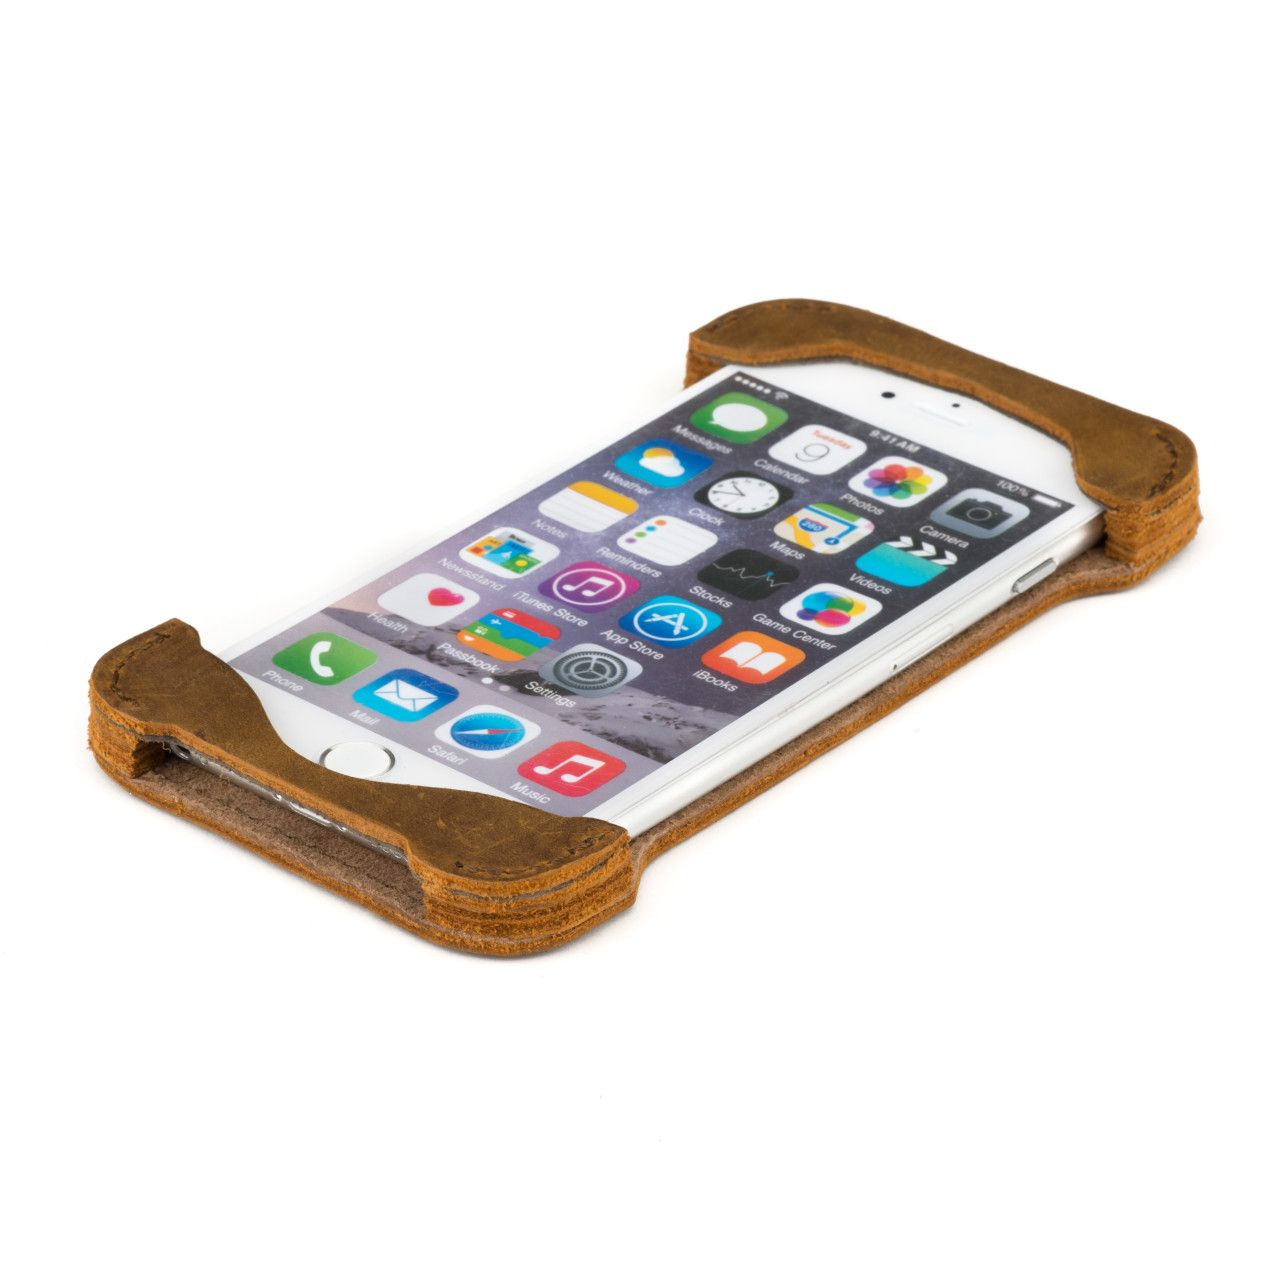 Iphone in iphone 6 leather case large in tobacco leather